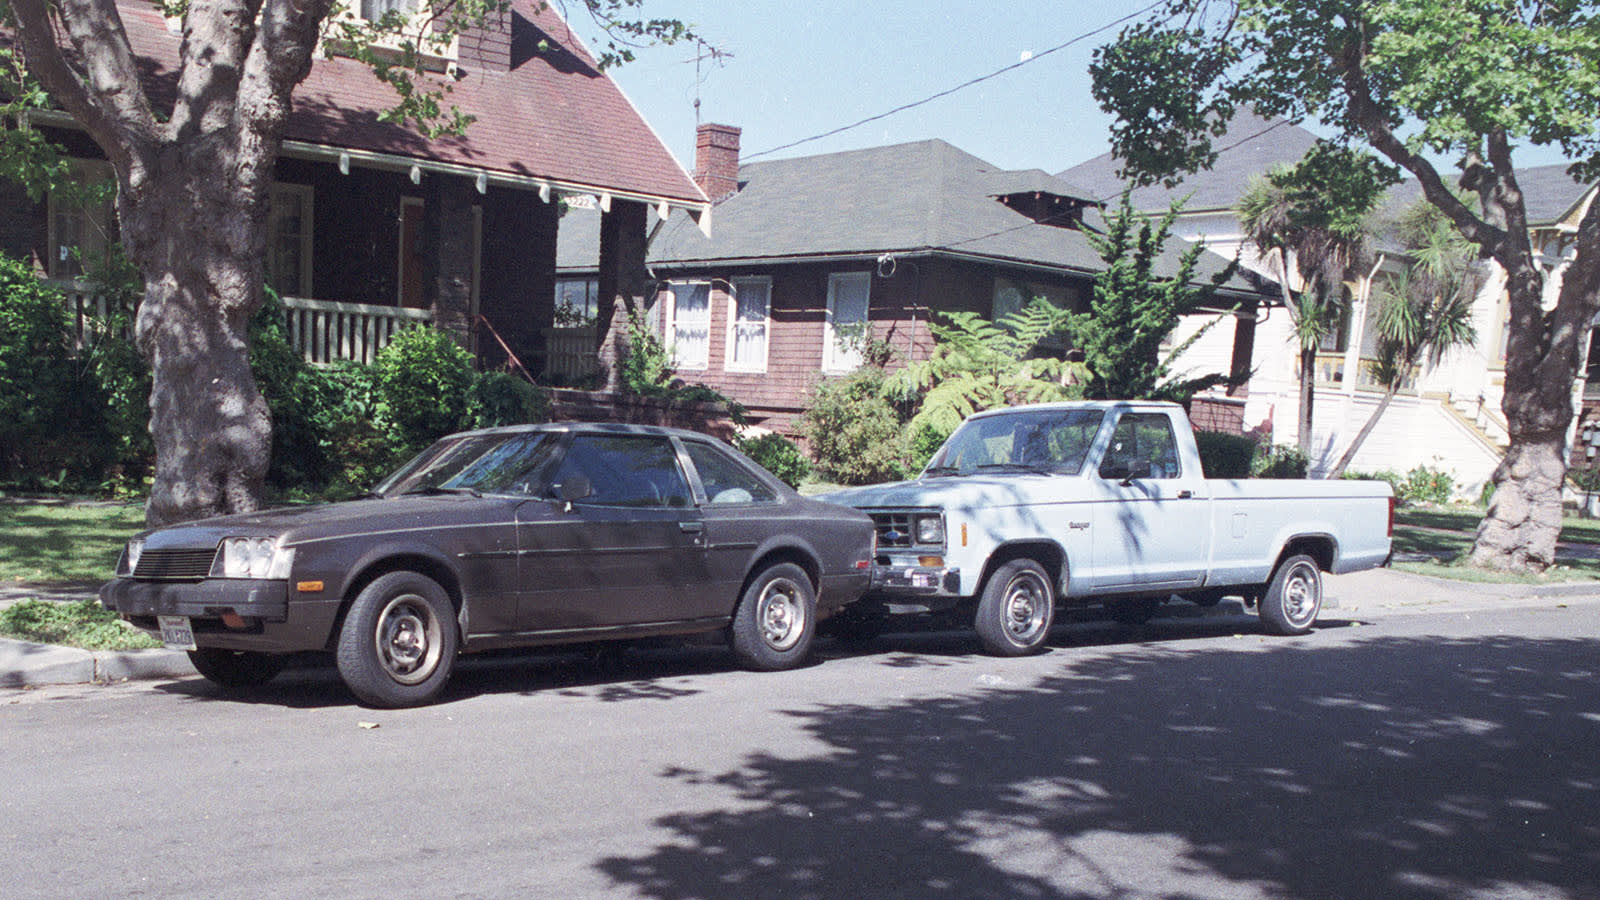 1984 Ford Ranger with Toyota Celica